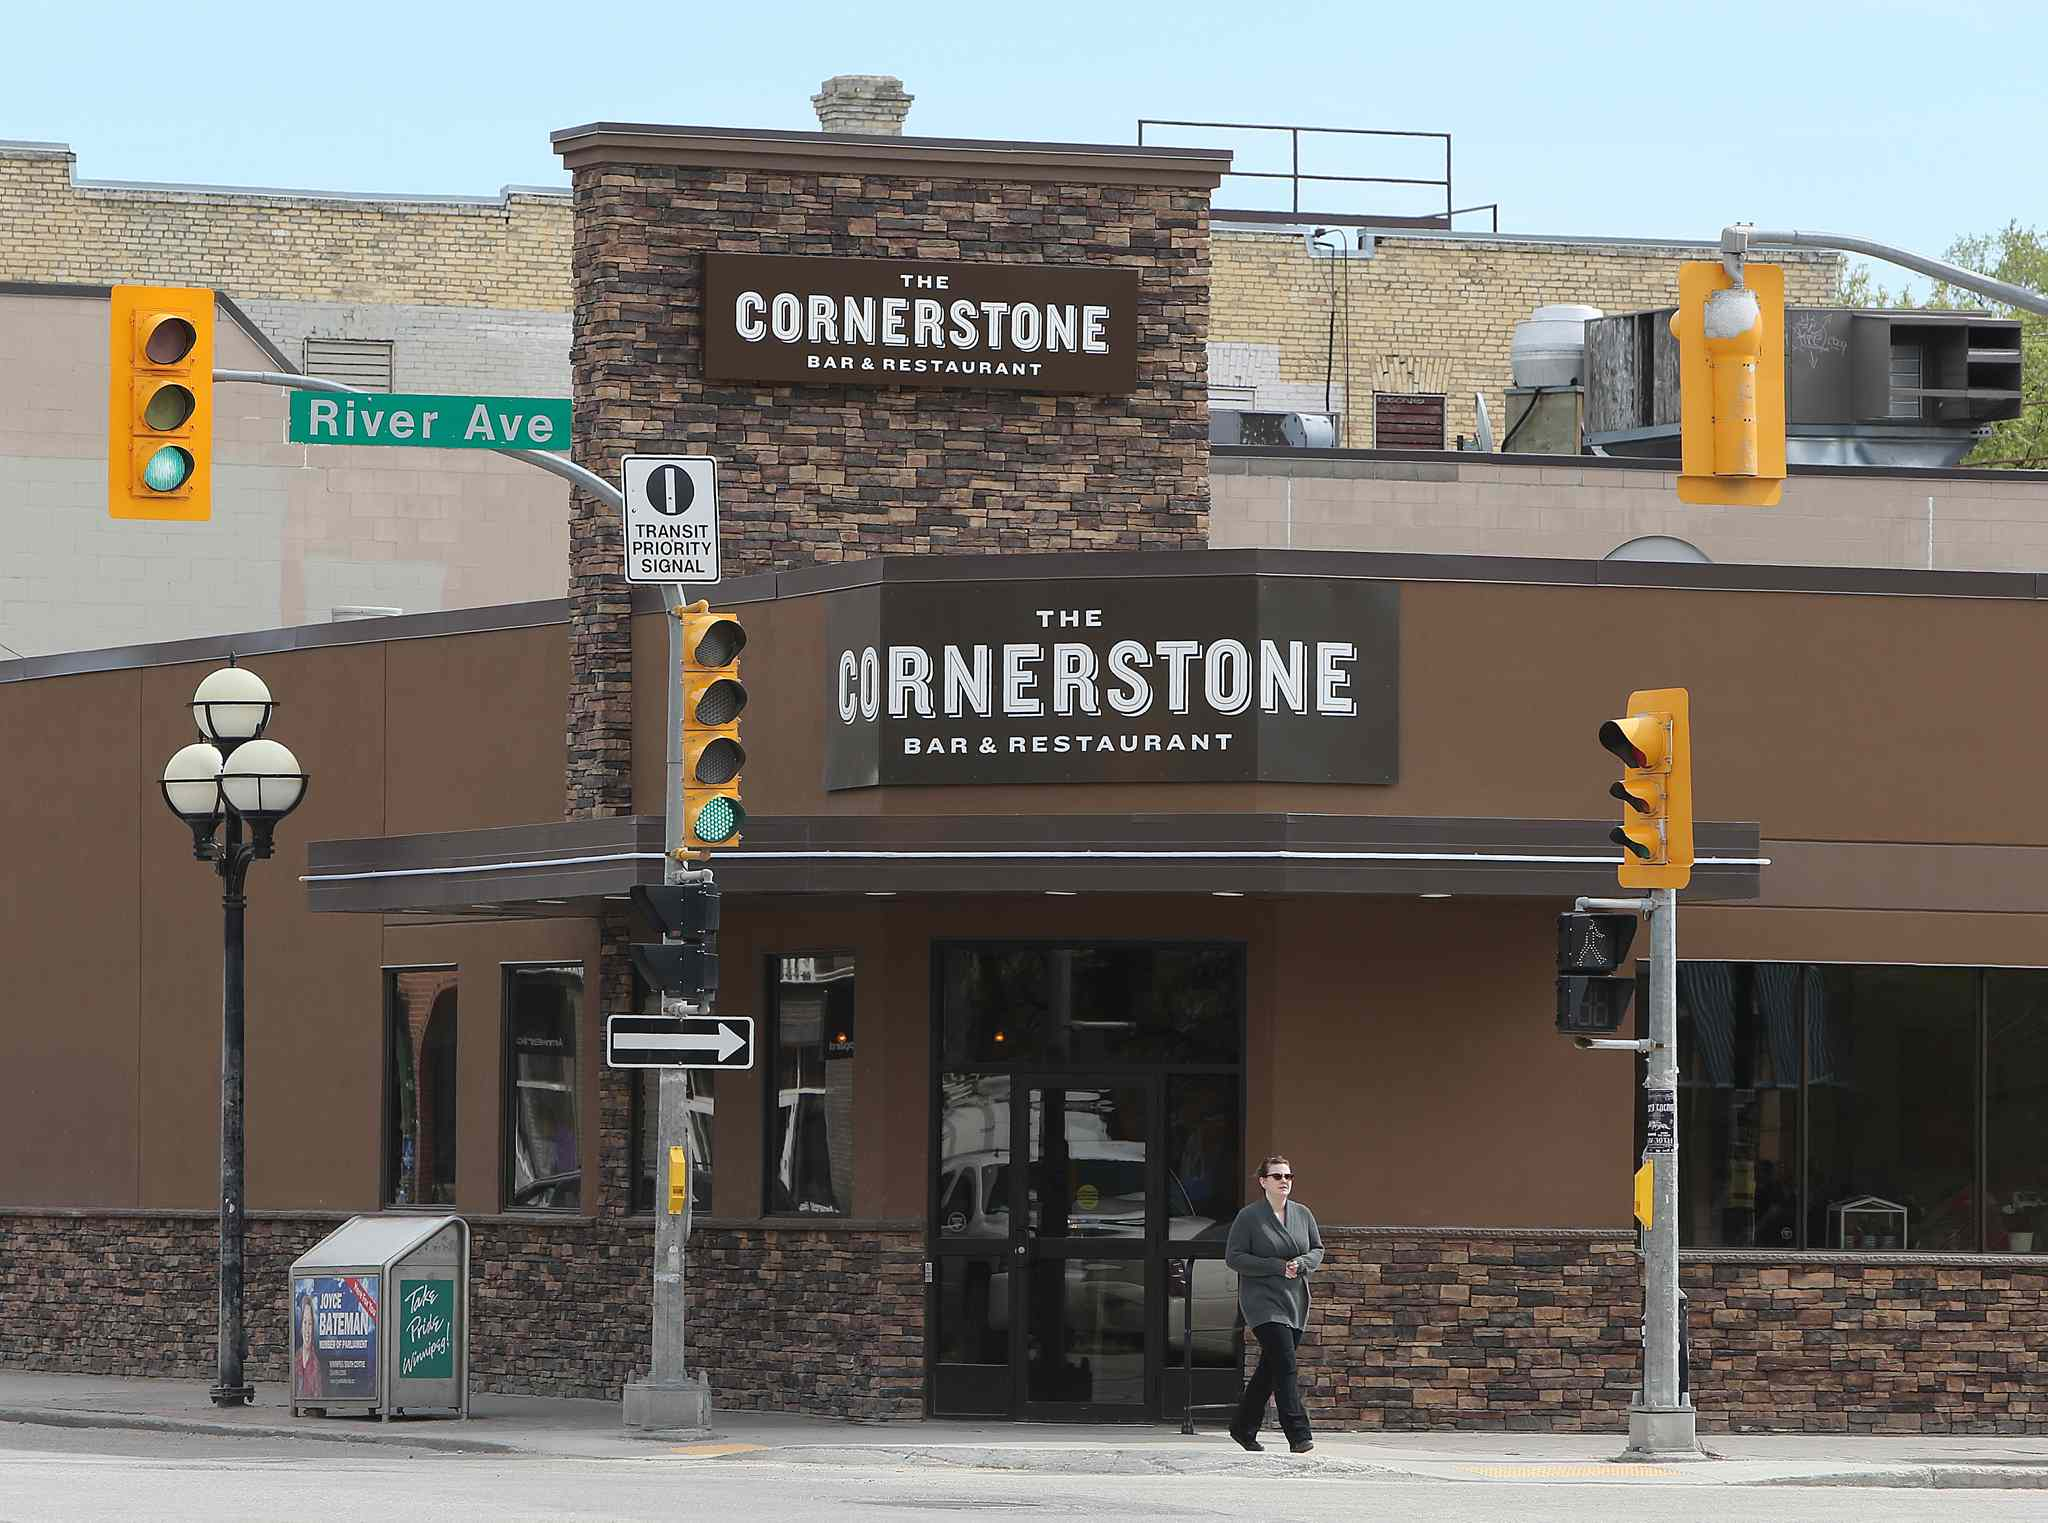 The Cornerstone Bar and Restaurant at the corner of Osborne Street and River Avenue in Winnipeg.